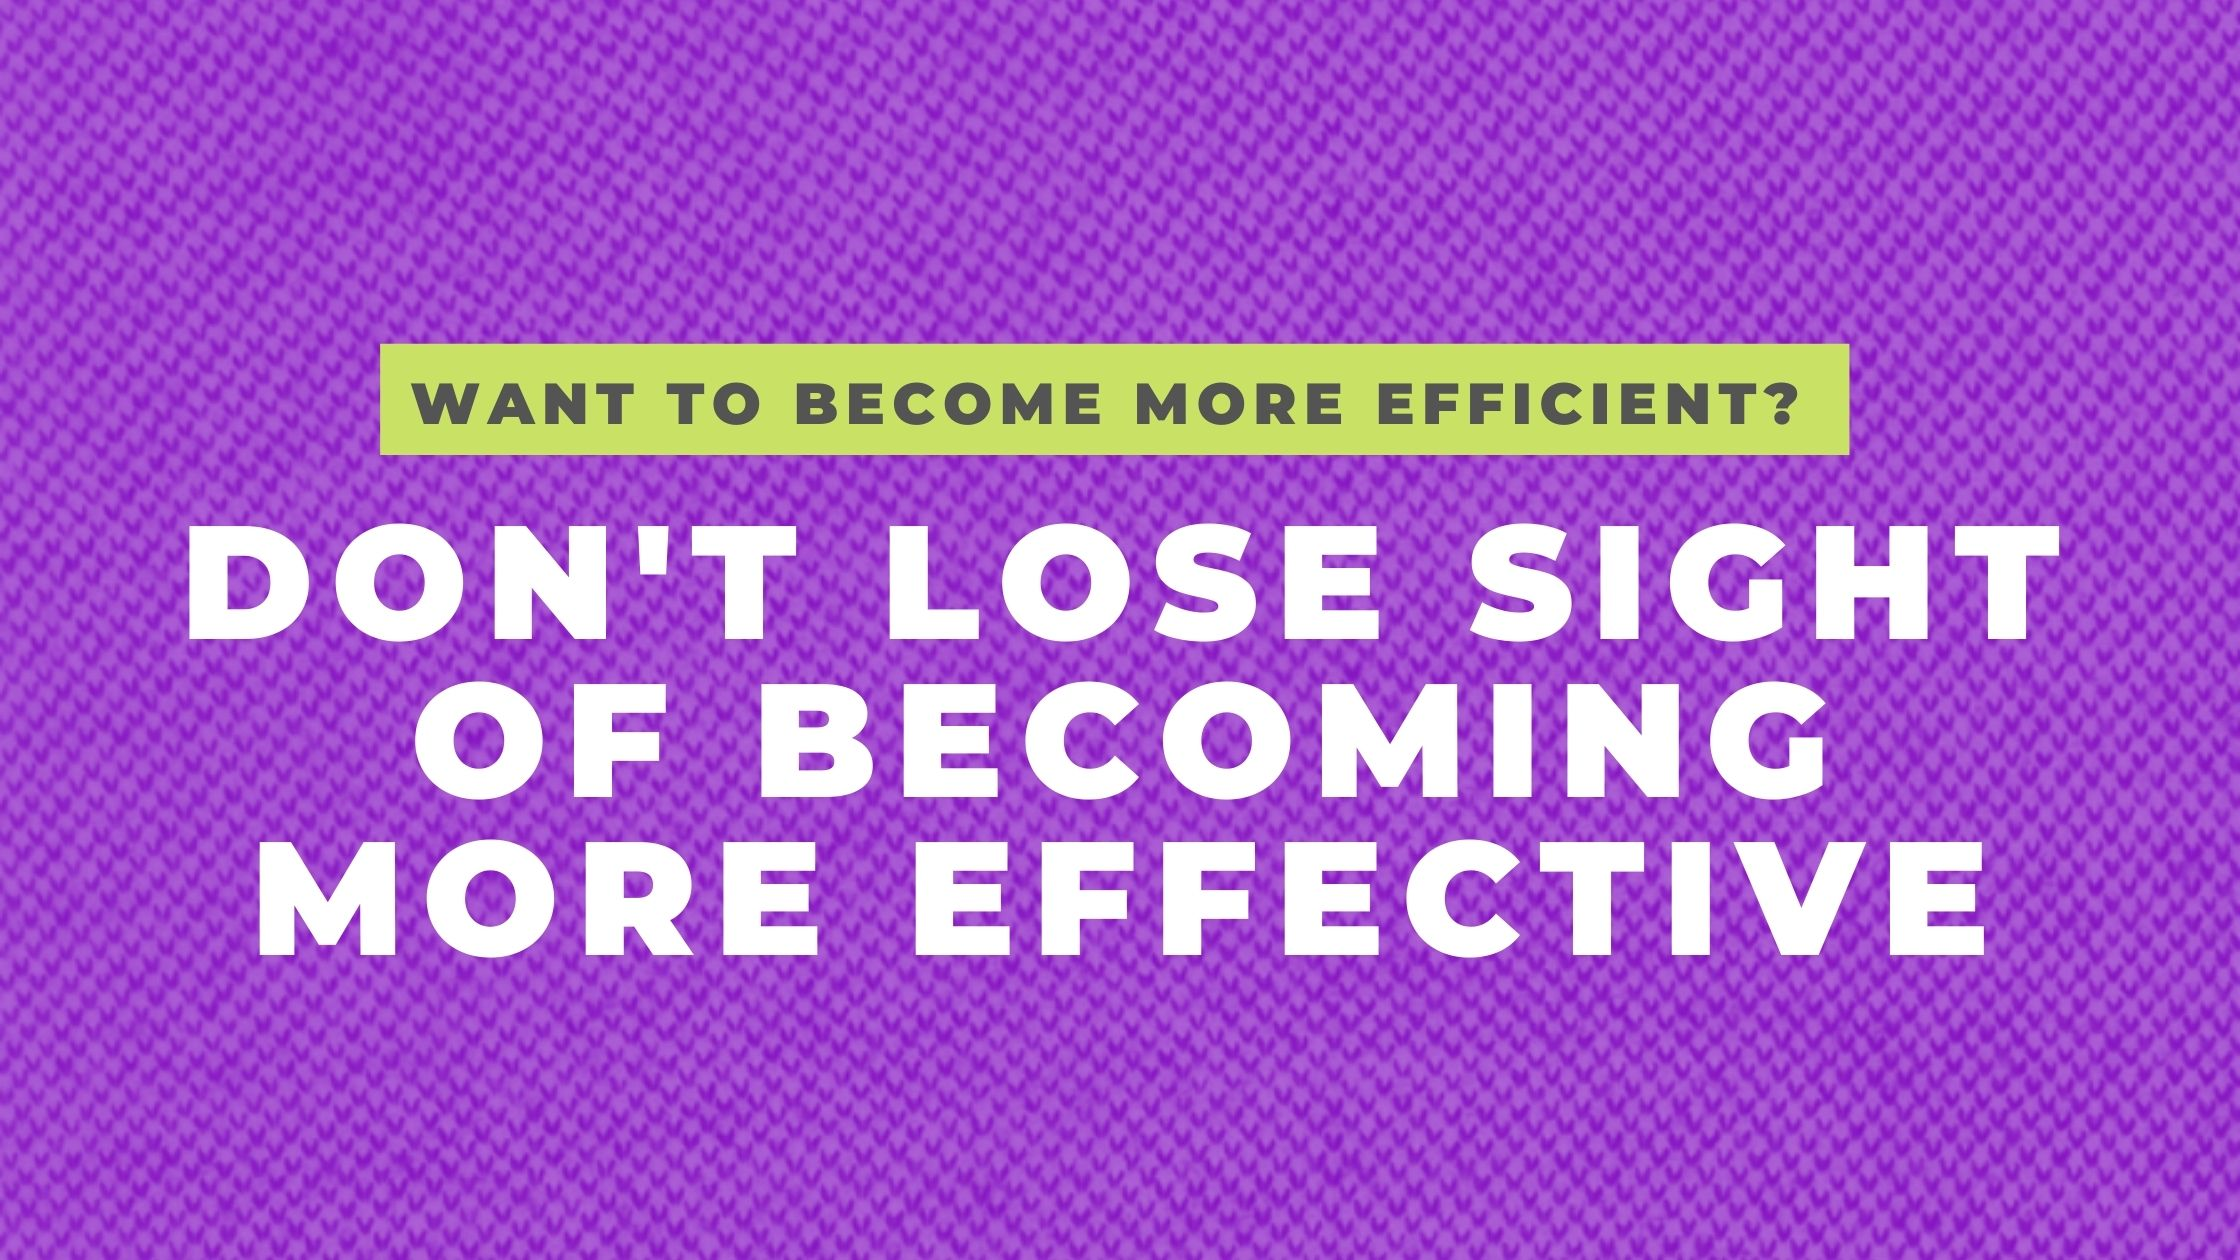 Become a more efficient business owner by being more effective